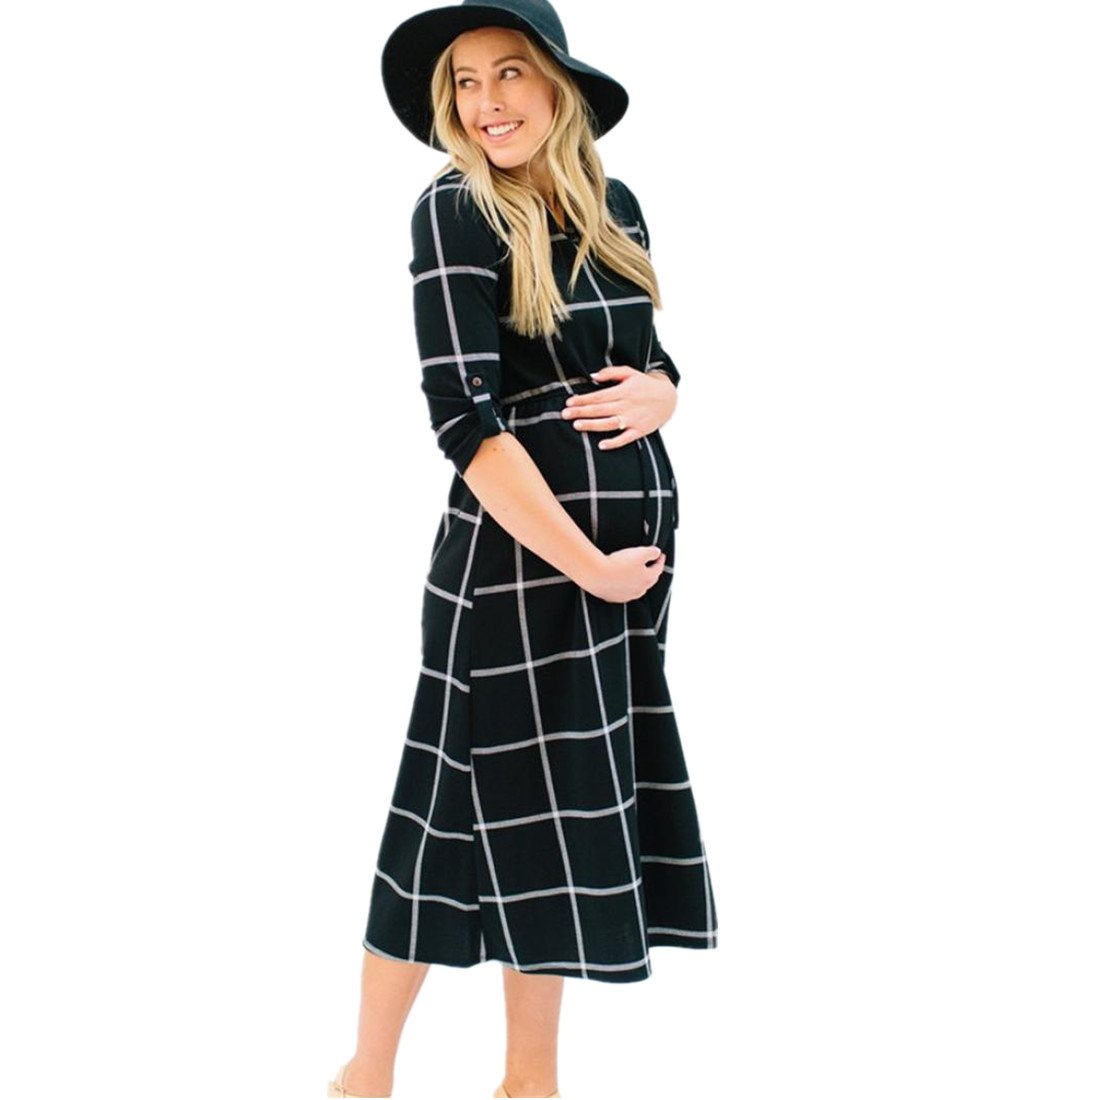 TOOPOOT Summer Pregnants Dress,Sexy Baby for Maternity, Baby Nursing Photography Plaid Short Sleeve Dress (S, Black)